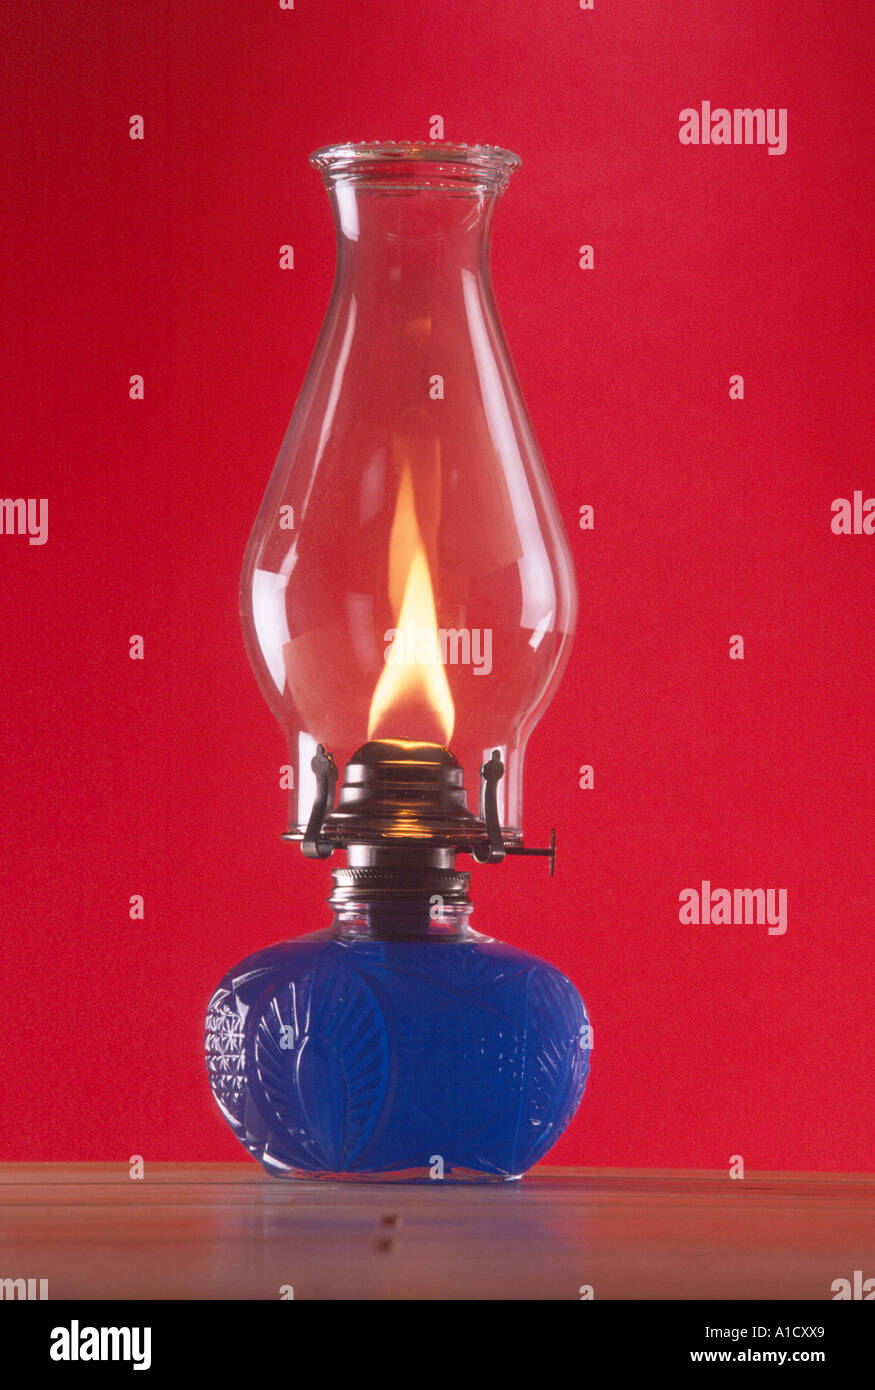 still life glass oil lamp with flame and blue oil in cut glass base red background PR CL - Stock Image